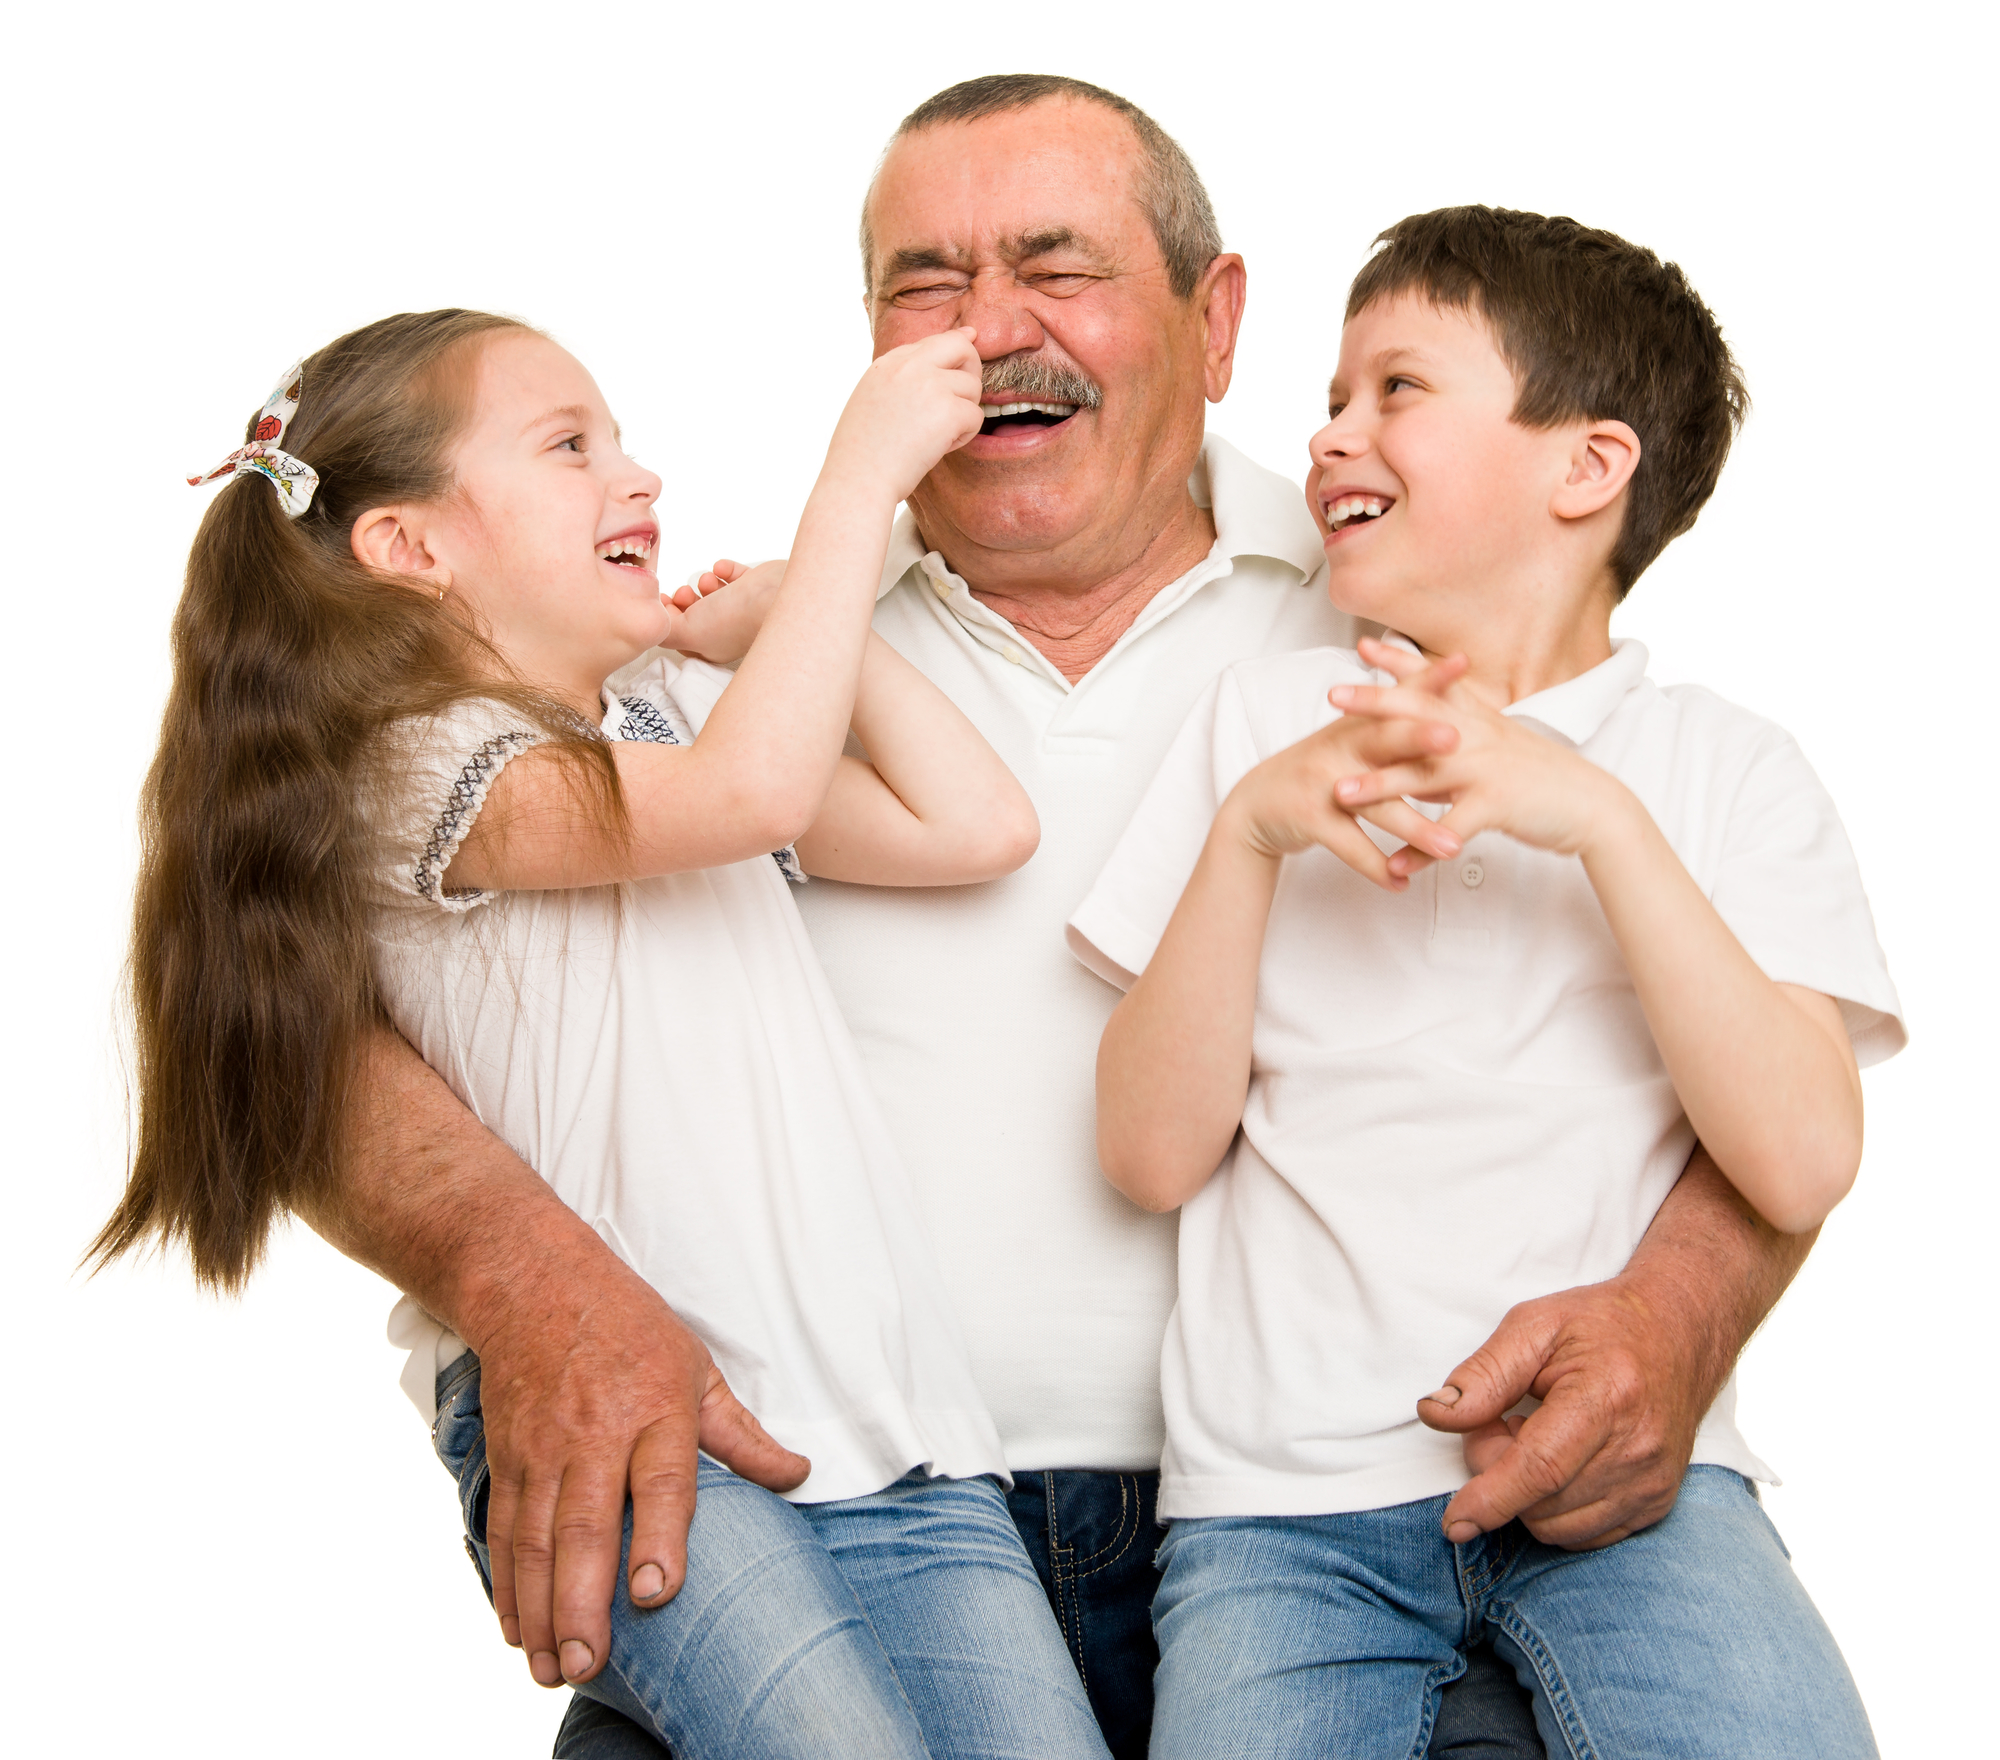 What Everyone Should Know About Being a Grandparent